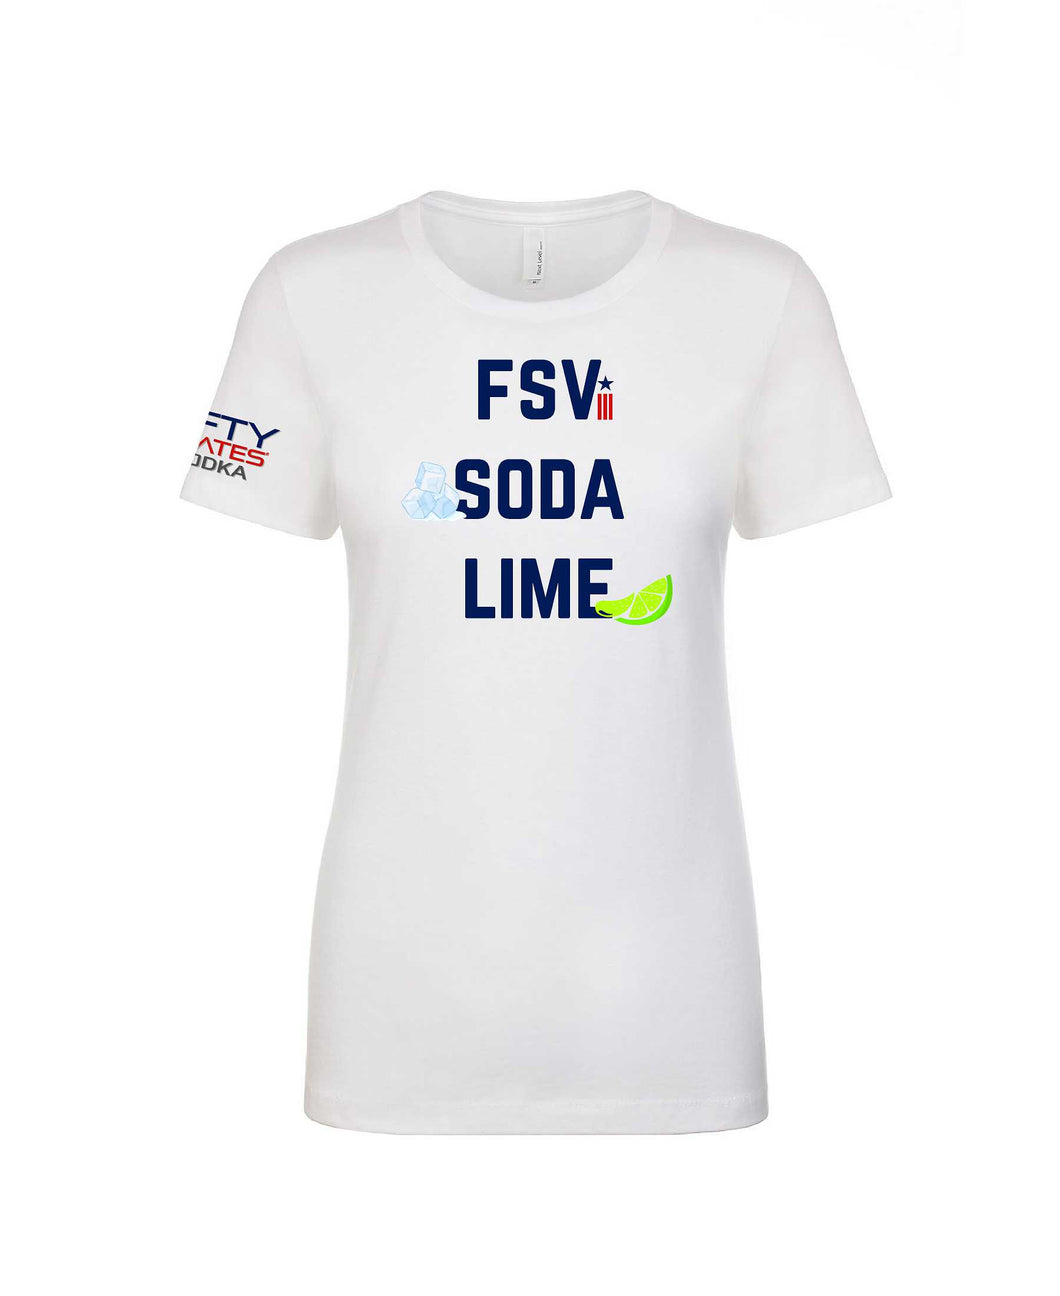 FSV Soda Lime Women's Crew Neck Tee